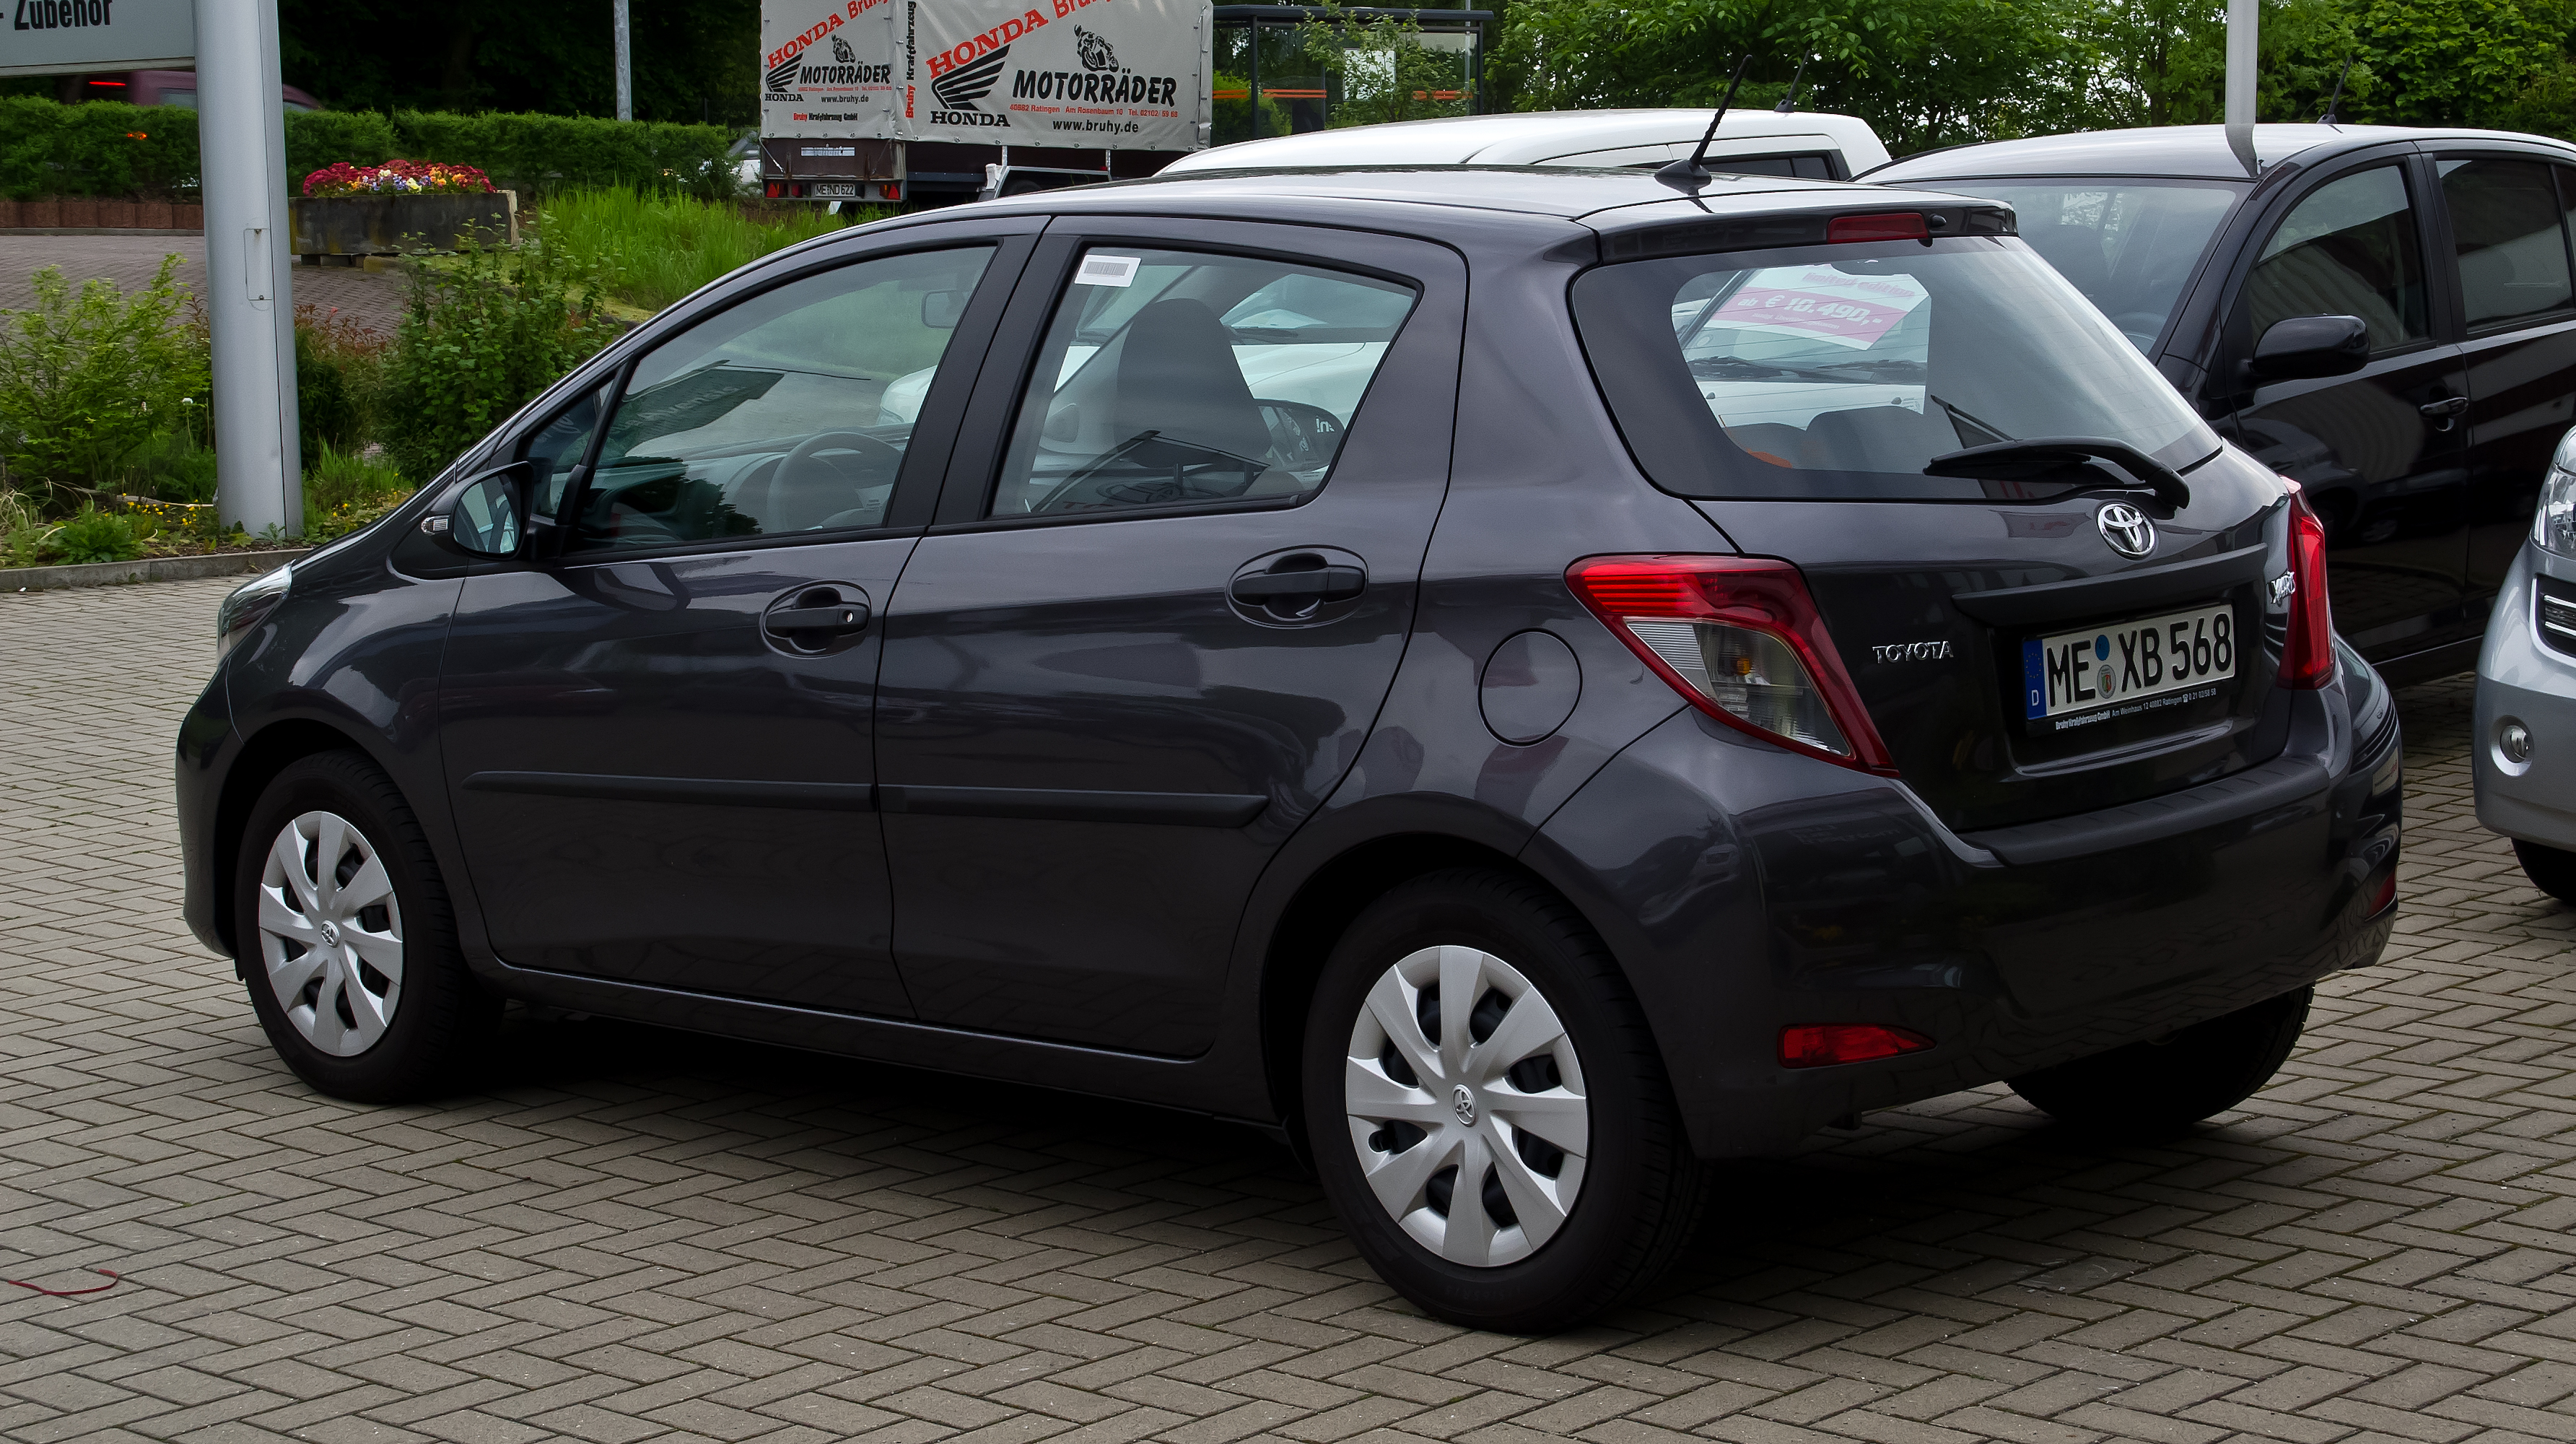 file toyota yaris 1 0 vvt i cool xp130 heckansicht 18 mai 2012 wikimedia. Black Bedroom Furniture Sets. Home Design Ideas